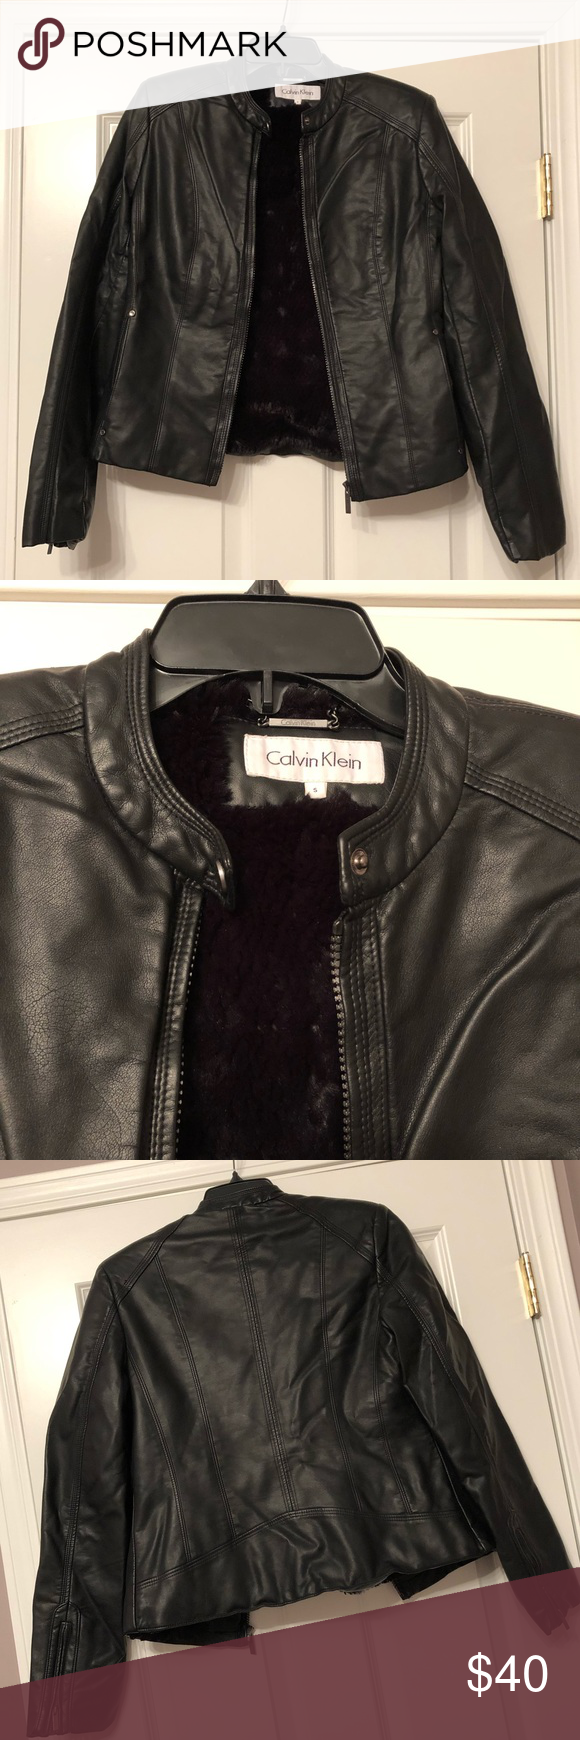 Calvin Klein Faux Leather Jacket (S) Calvin Klein Faux